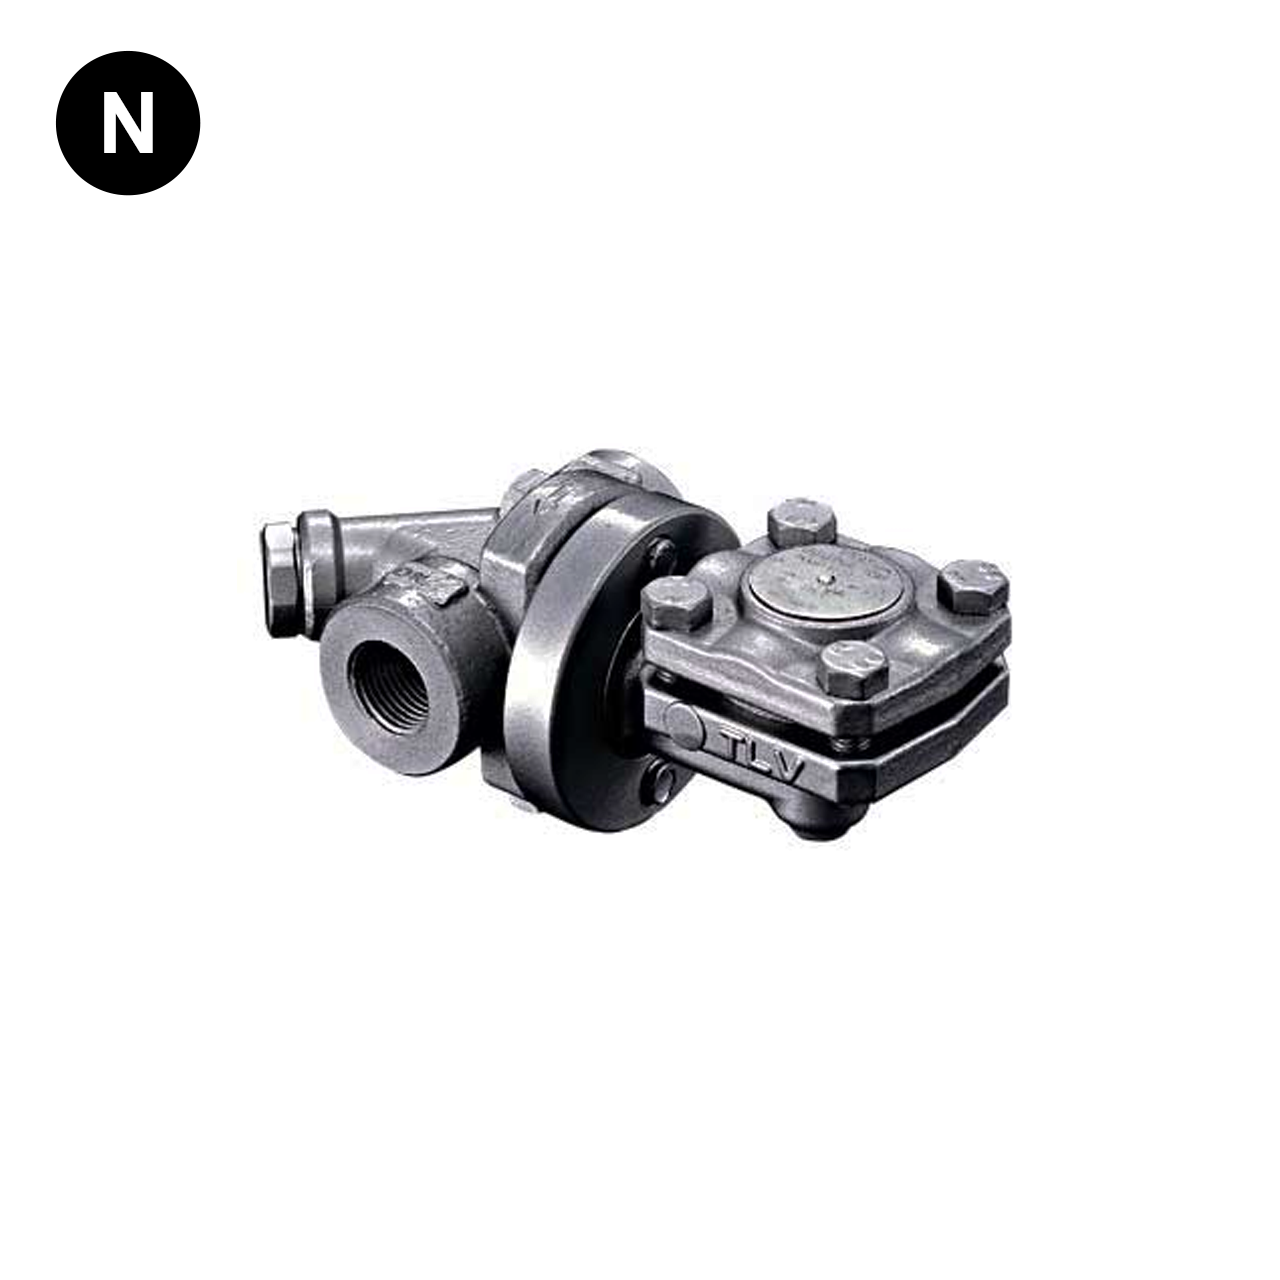 Tlv j7. 2x flanged free float steam trap steam select.